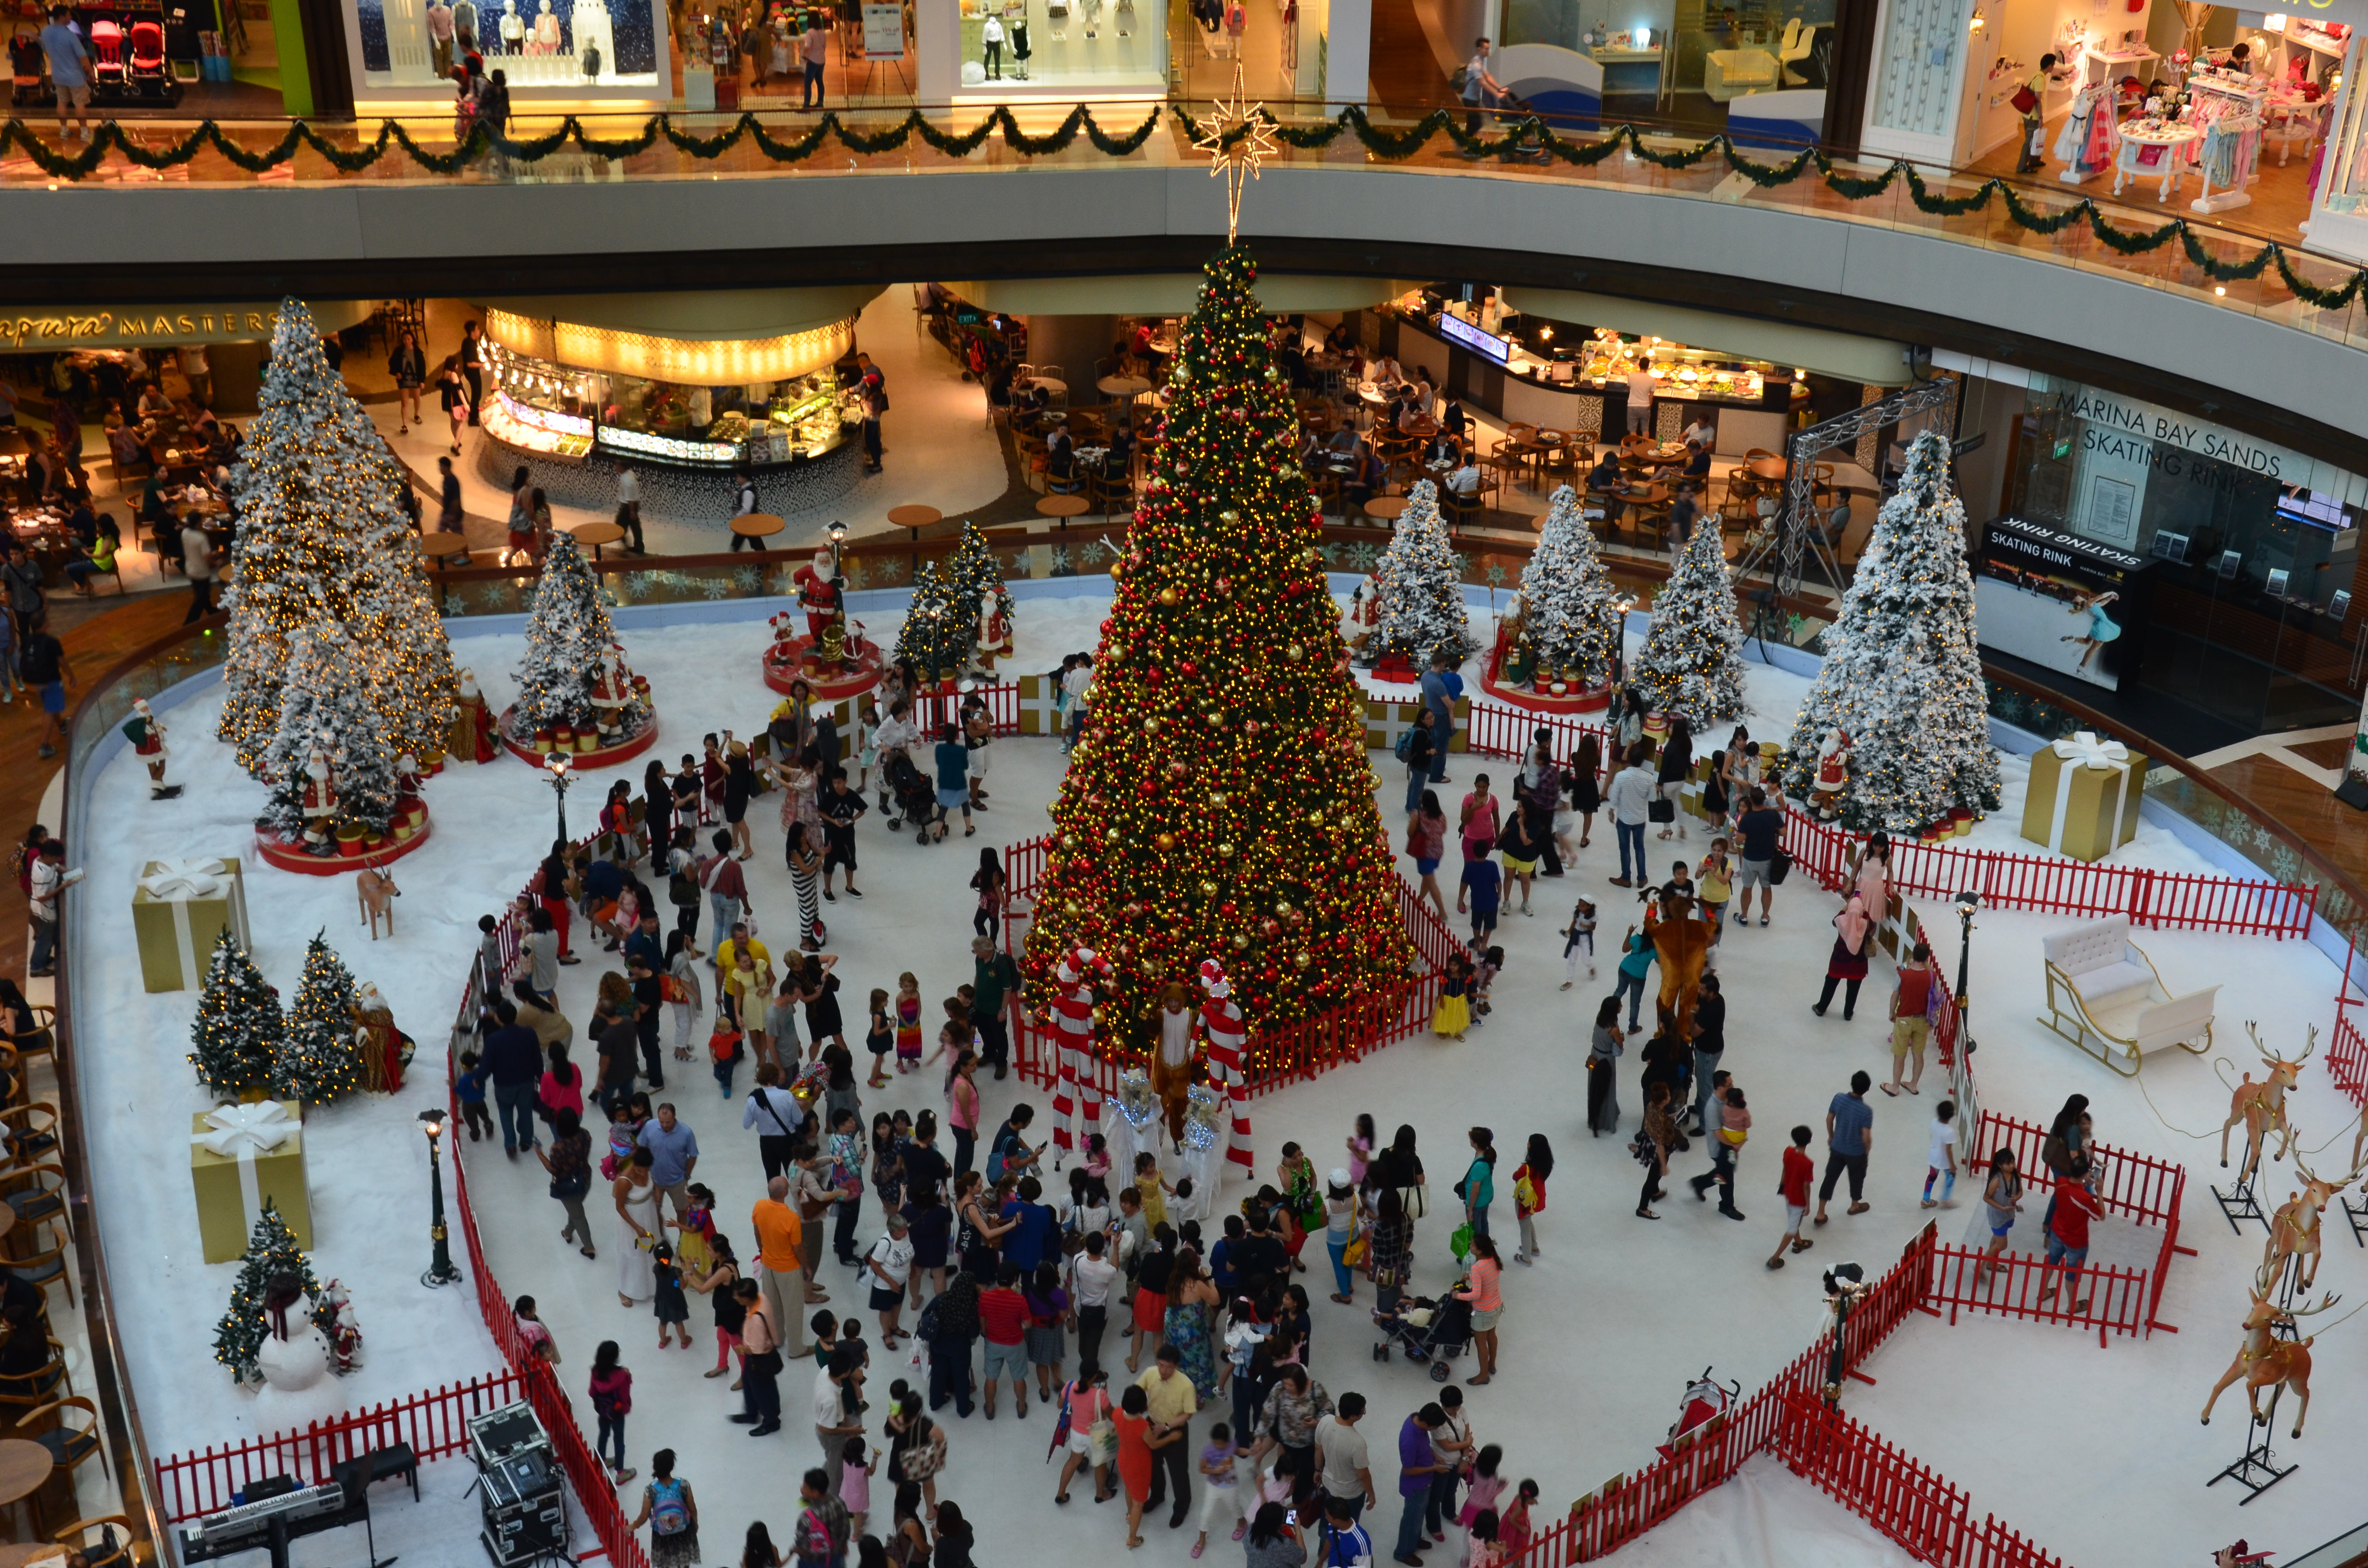 Singapore's Christmas Trees, Festive Lights and Dazzling Decorations  Why Wa...